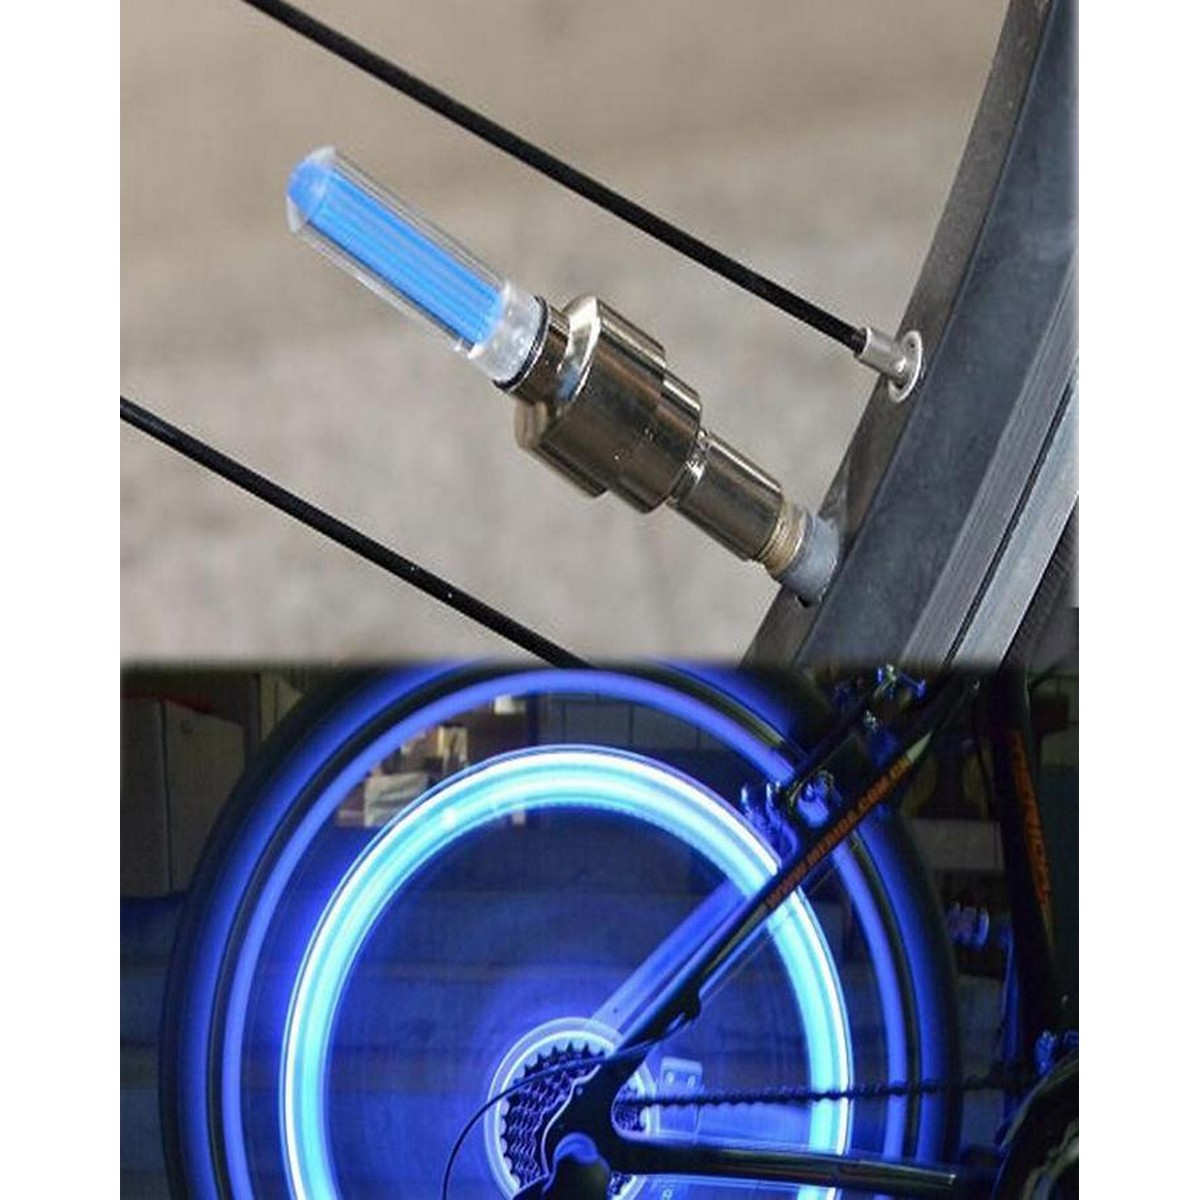 2 Pcs LED Flash Waterproof Bicycle Accessories Wheel Tyre Tire Valve Caps Neon Night Light Bulb for Bike Car Motorcycle